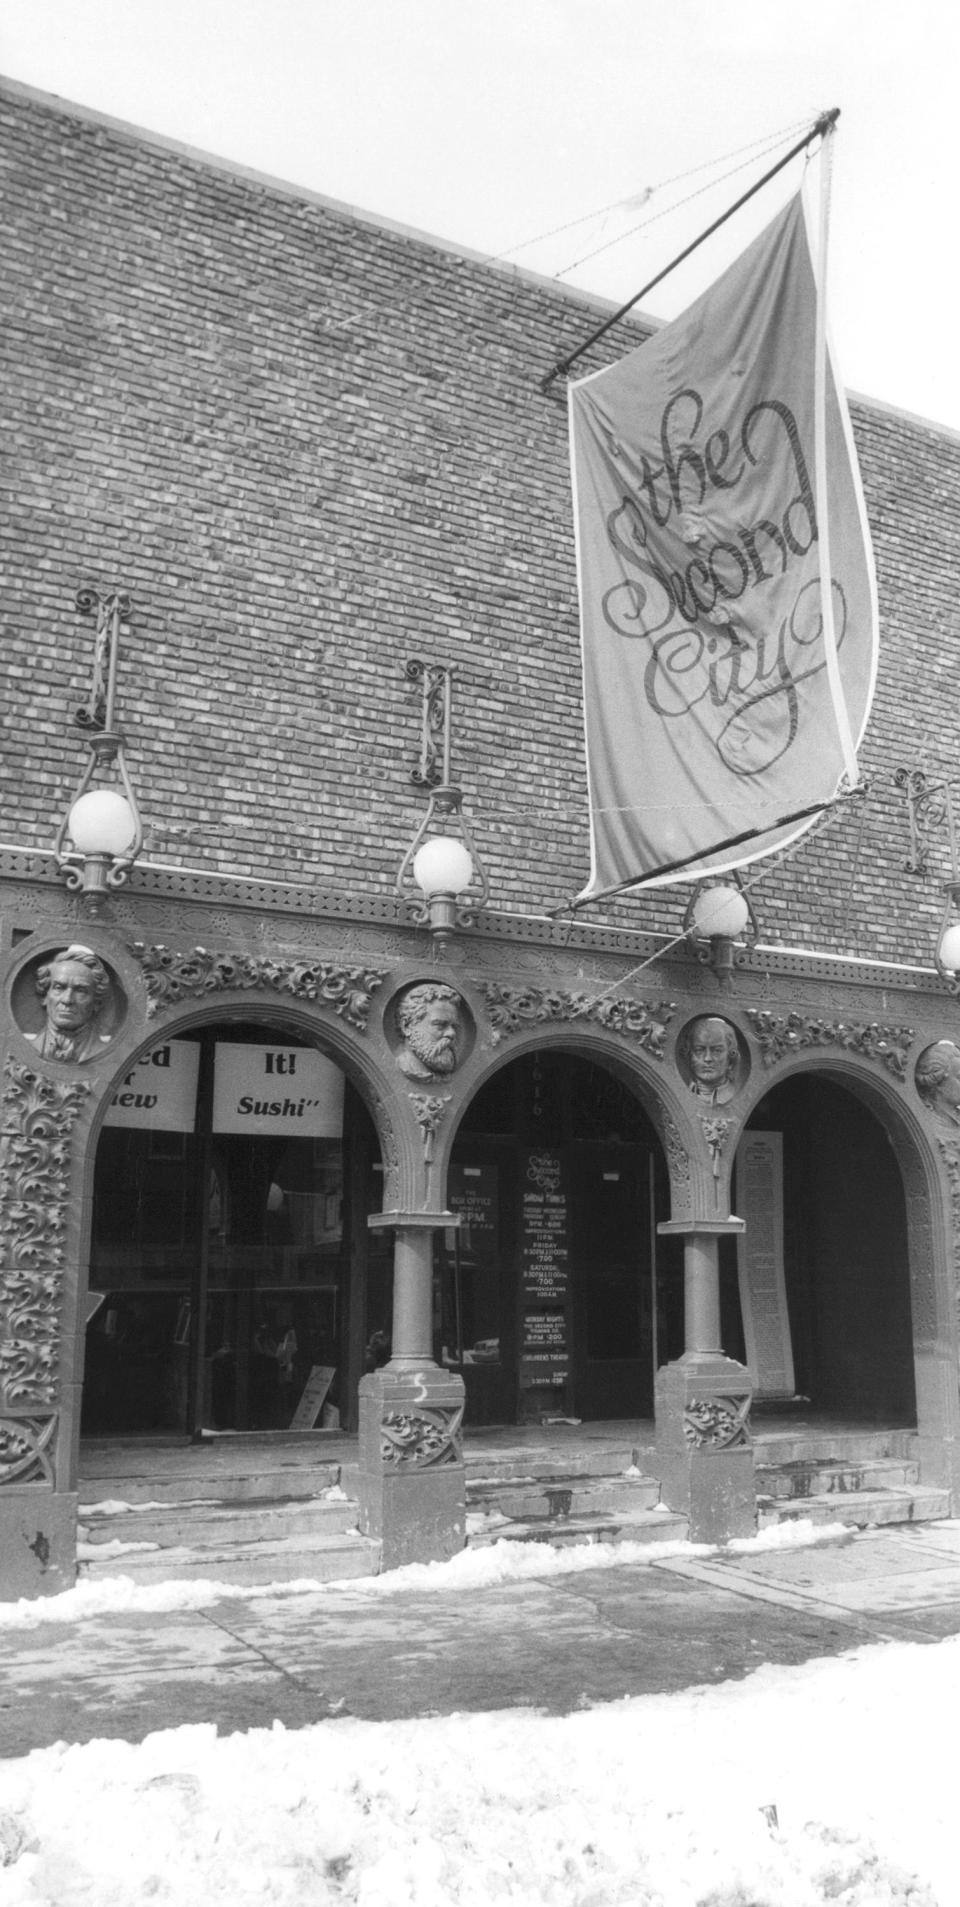 FILE - This March 6, 1982, file photo, shows the home of the famed improvisational troupe, Second City, in Chicago's Old Town section. Chicago's Second City comedy theater is up for sale. The sale, announced Tuesday, Oct. 6, 2020, is the second in the company's 60-year history. (AP Photo/Fred Jewell, File)